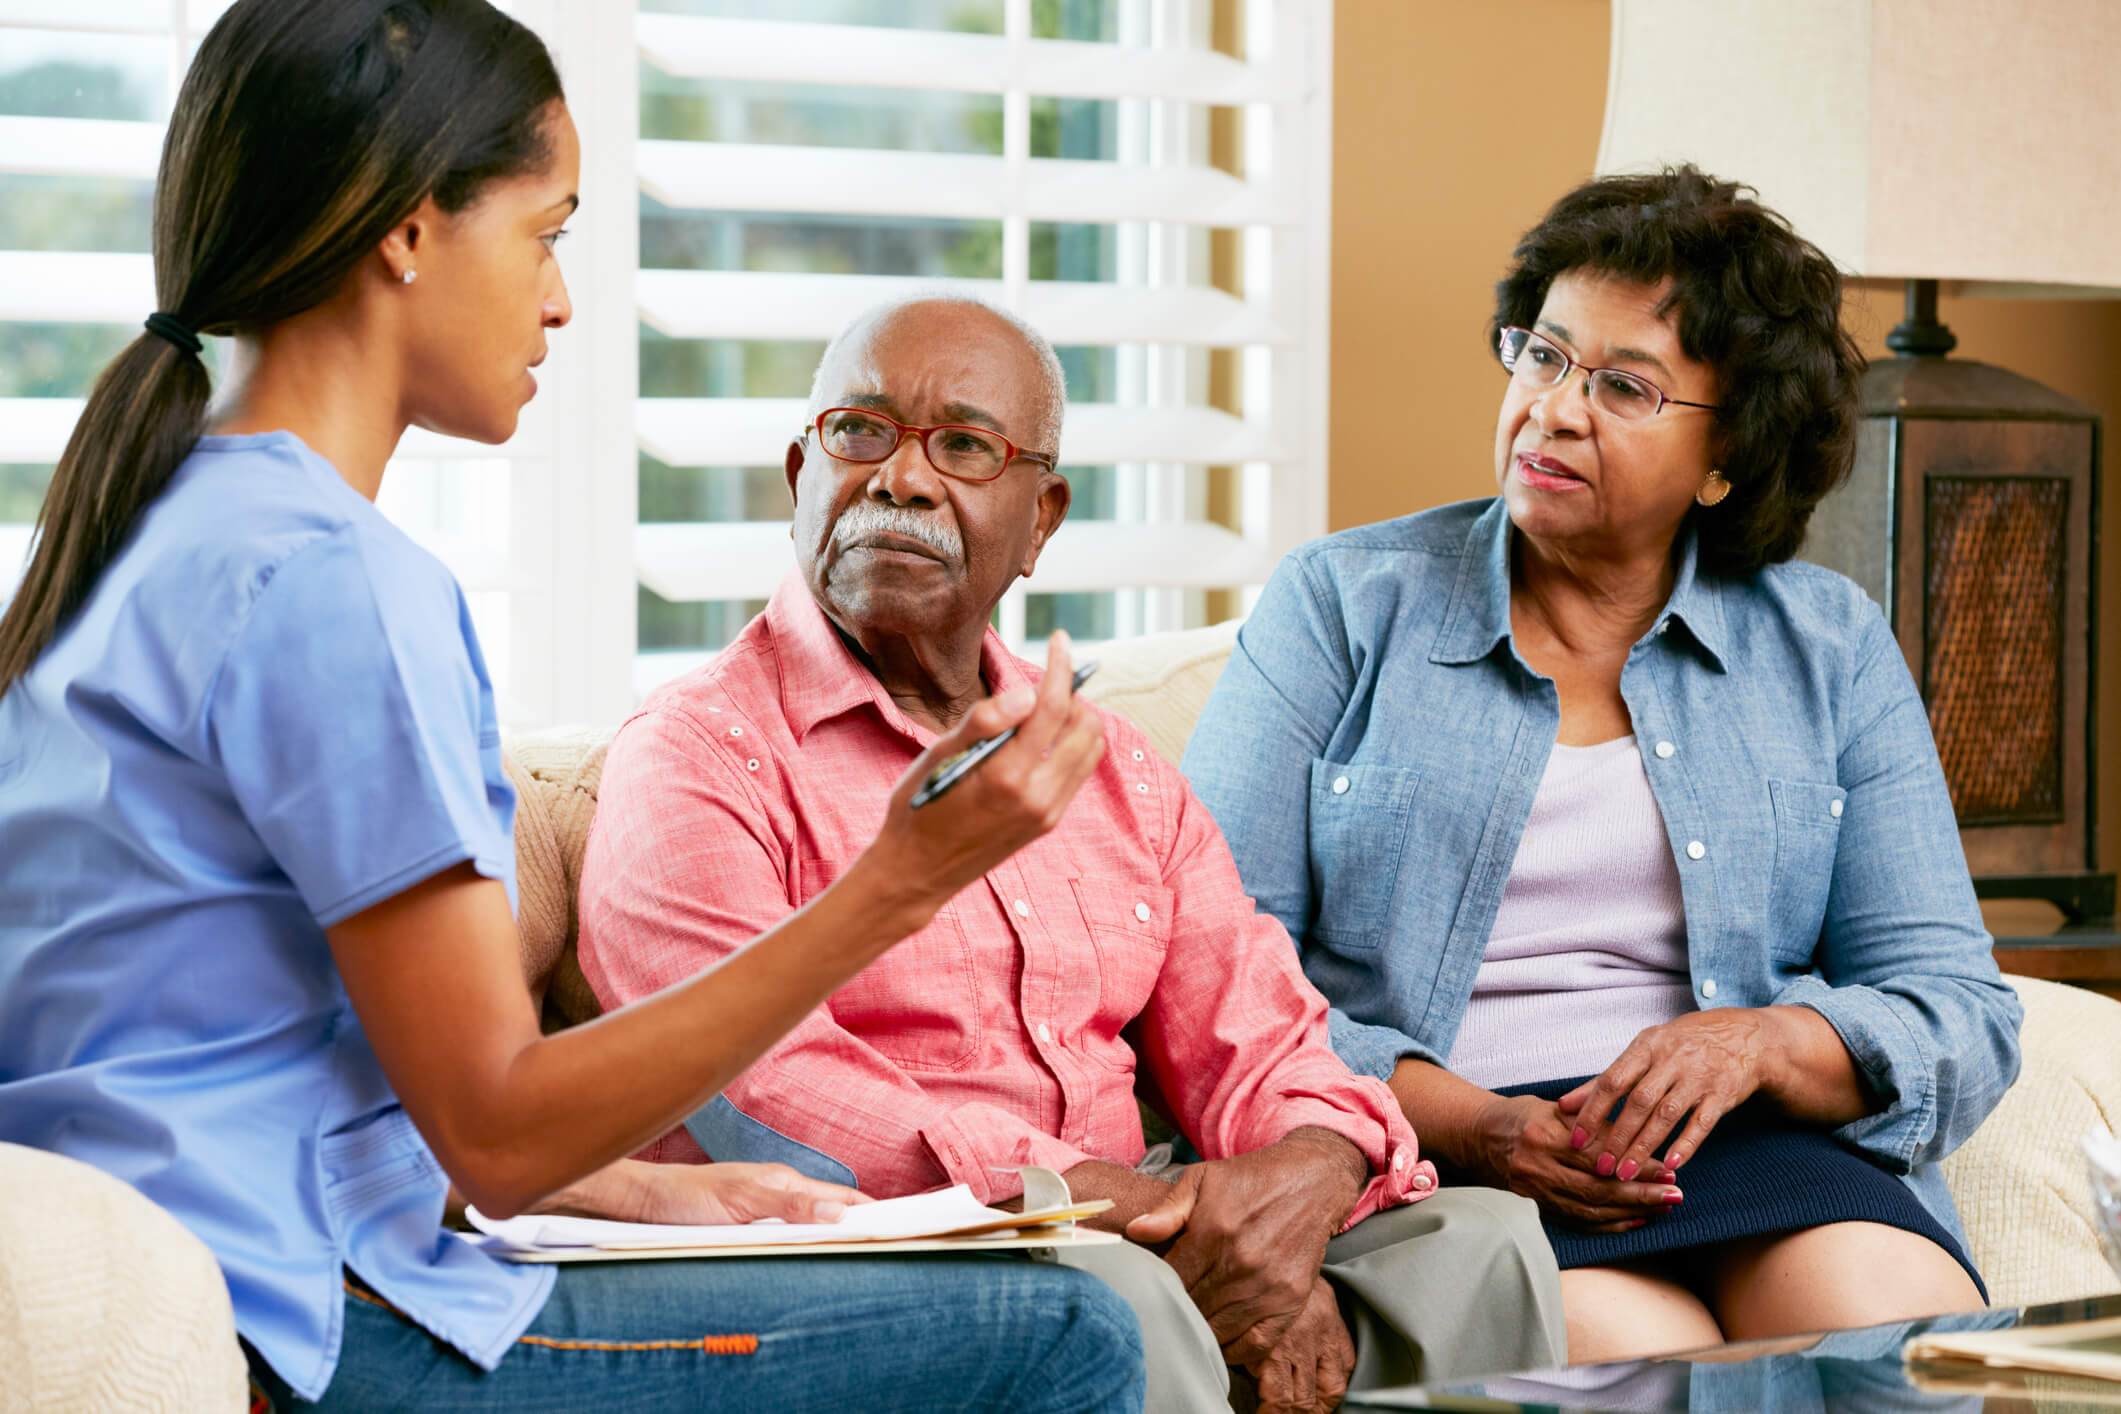 Image of previous post - 5 SIGNS IT MAY BE TIME TO LOOK FOR AN ASSISTED LIVING COMMUNITY